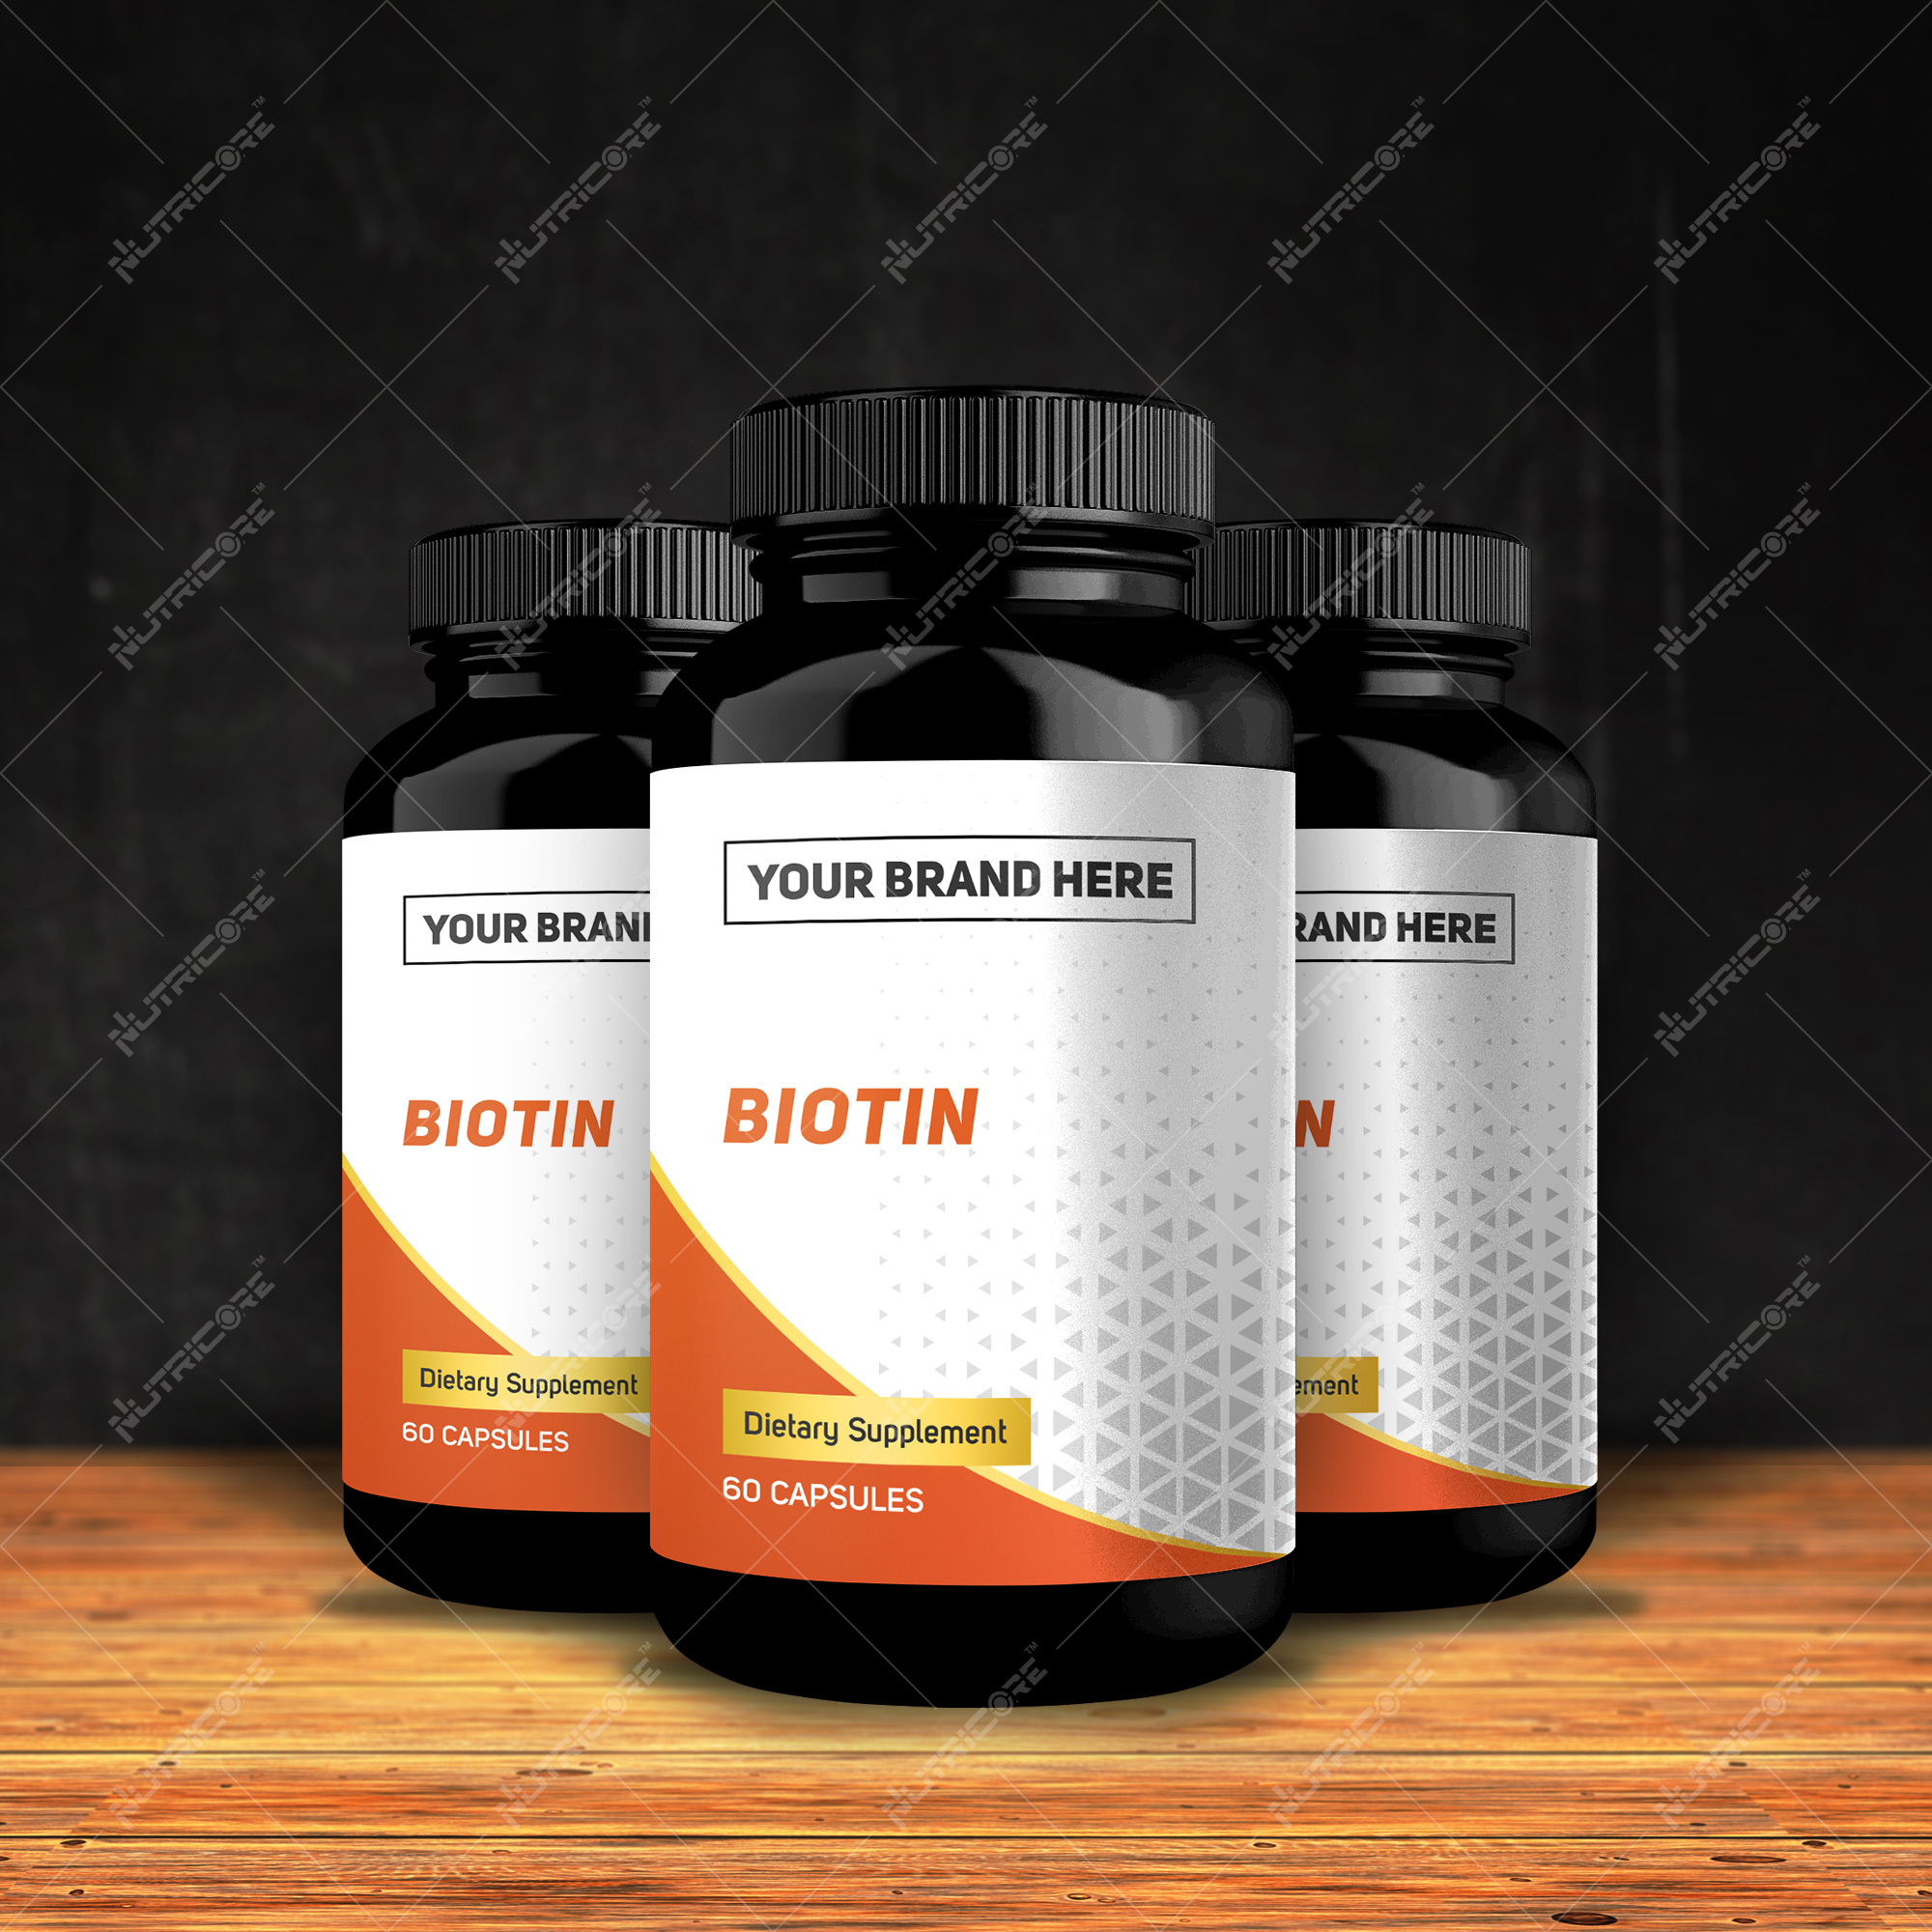 Contract Manufacturing for Biotin